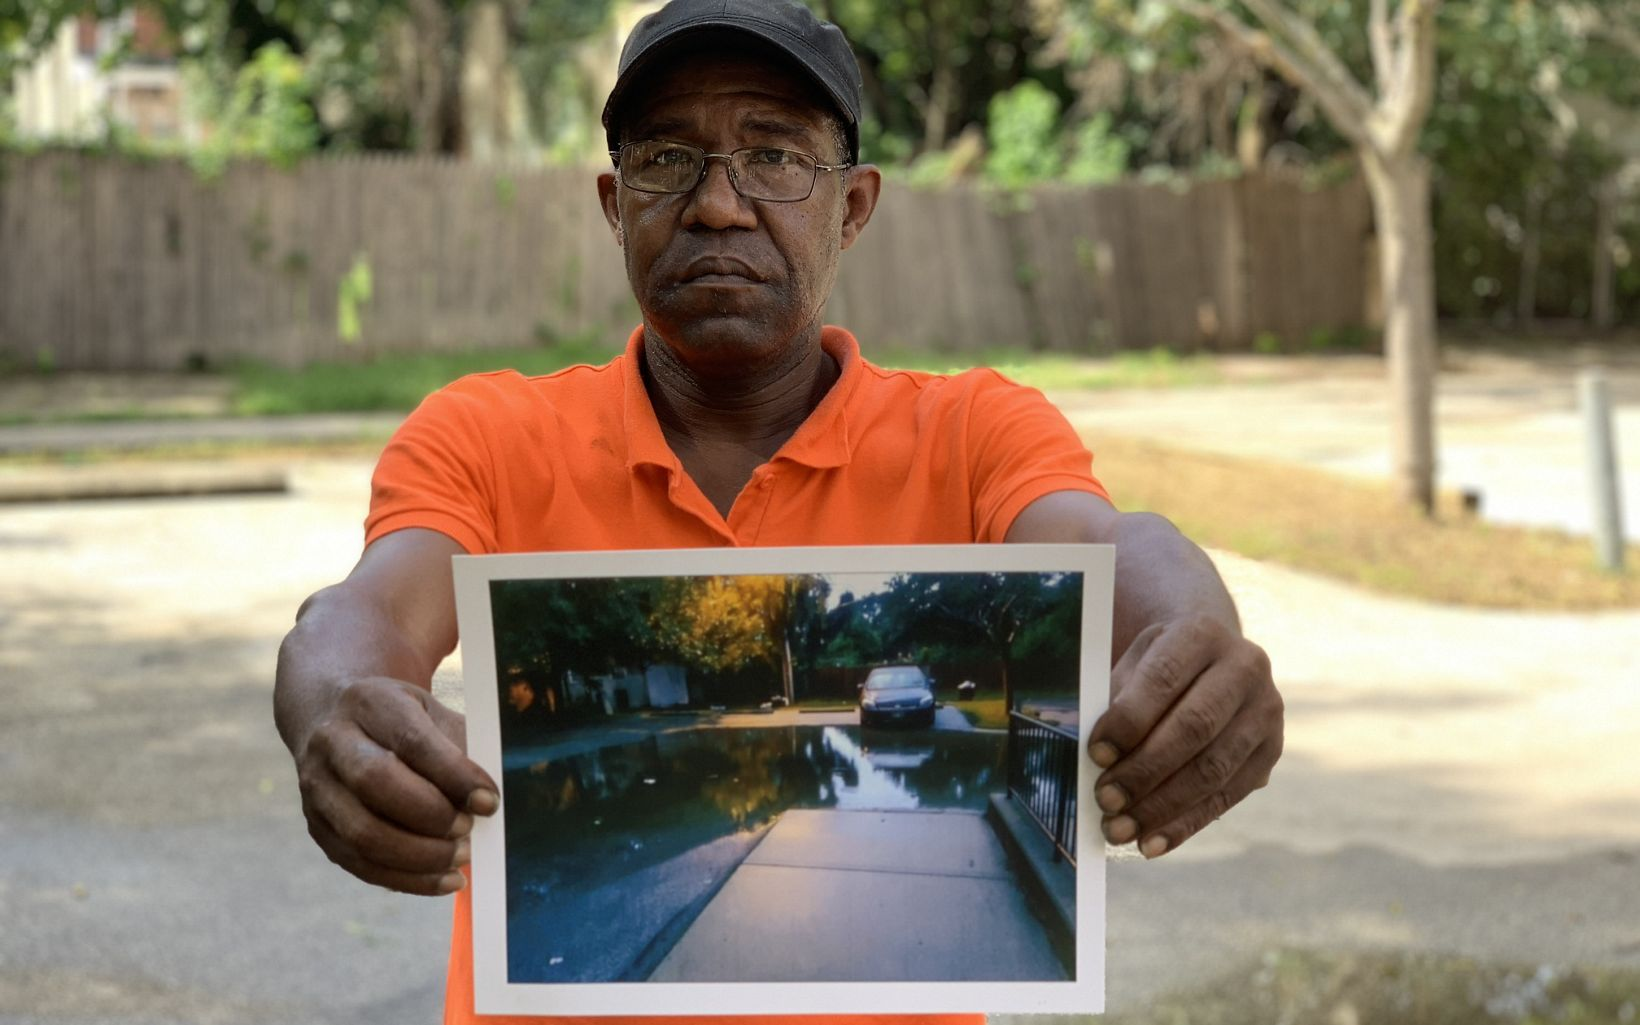 a man standing in the middle of a parking lot holds a photo of the parking flooded